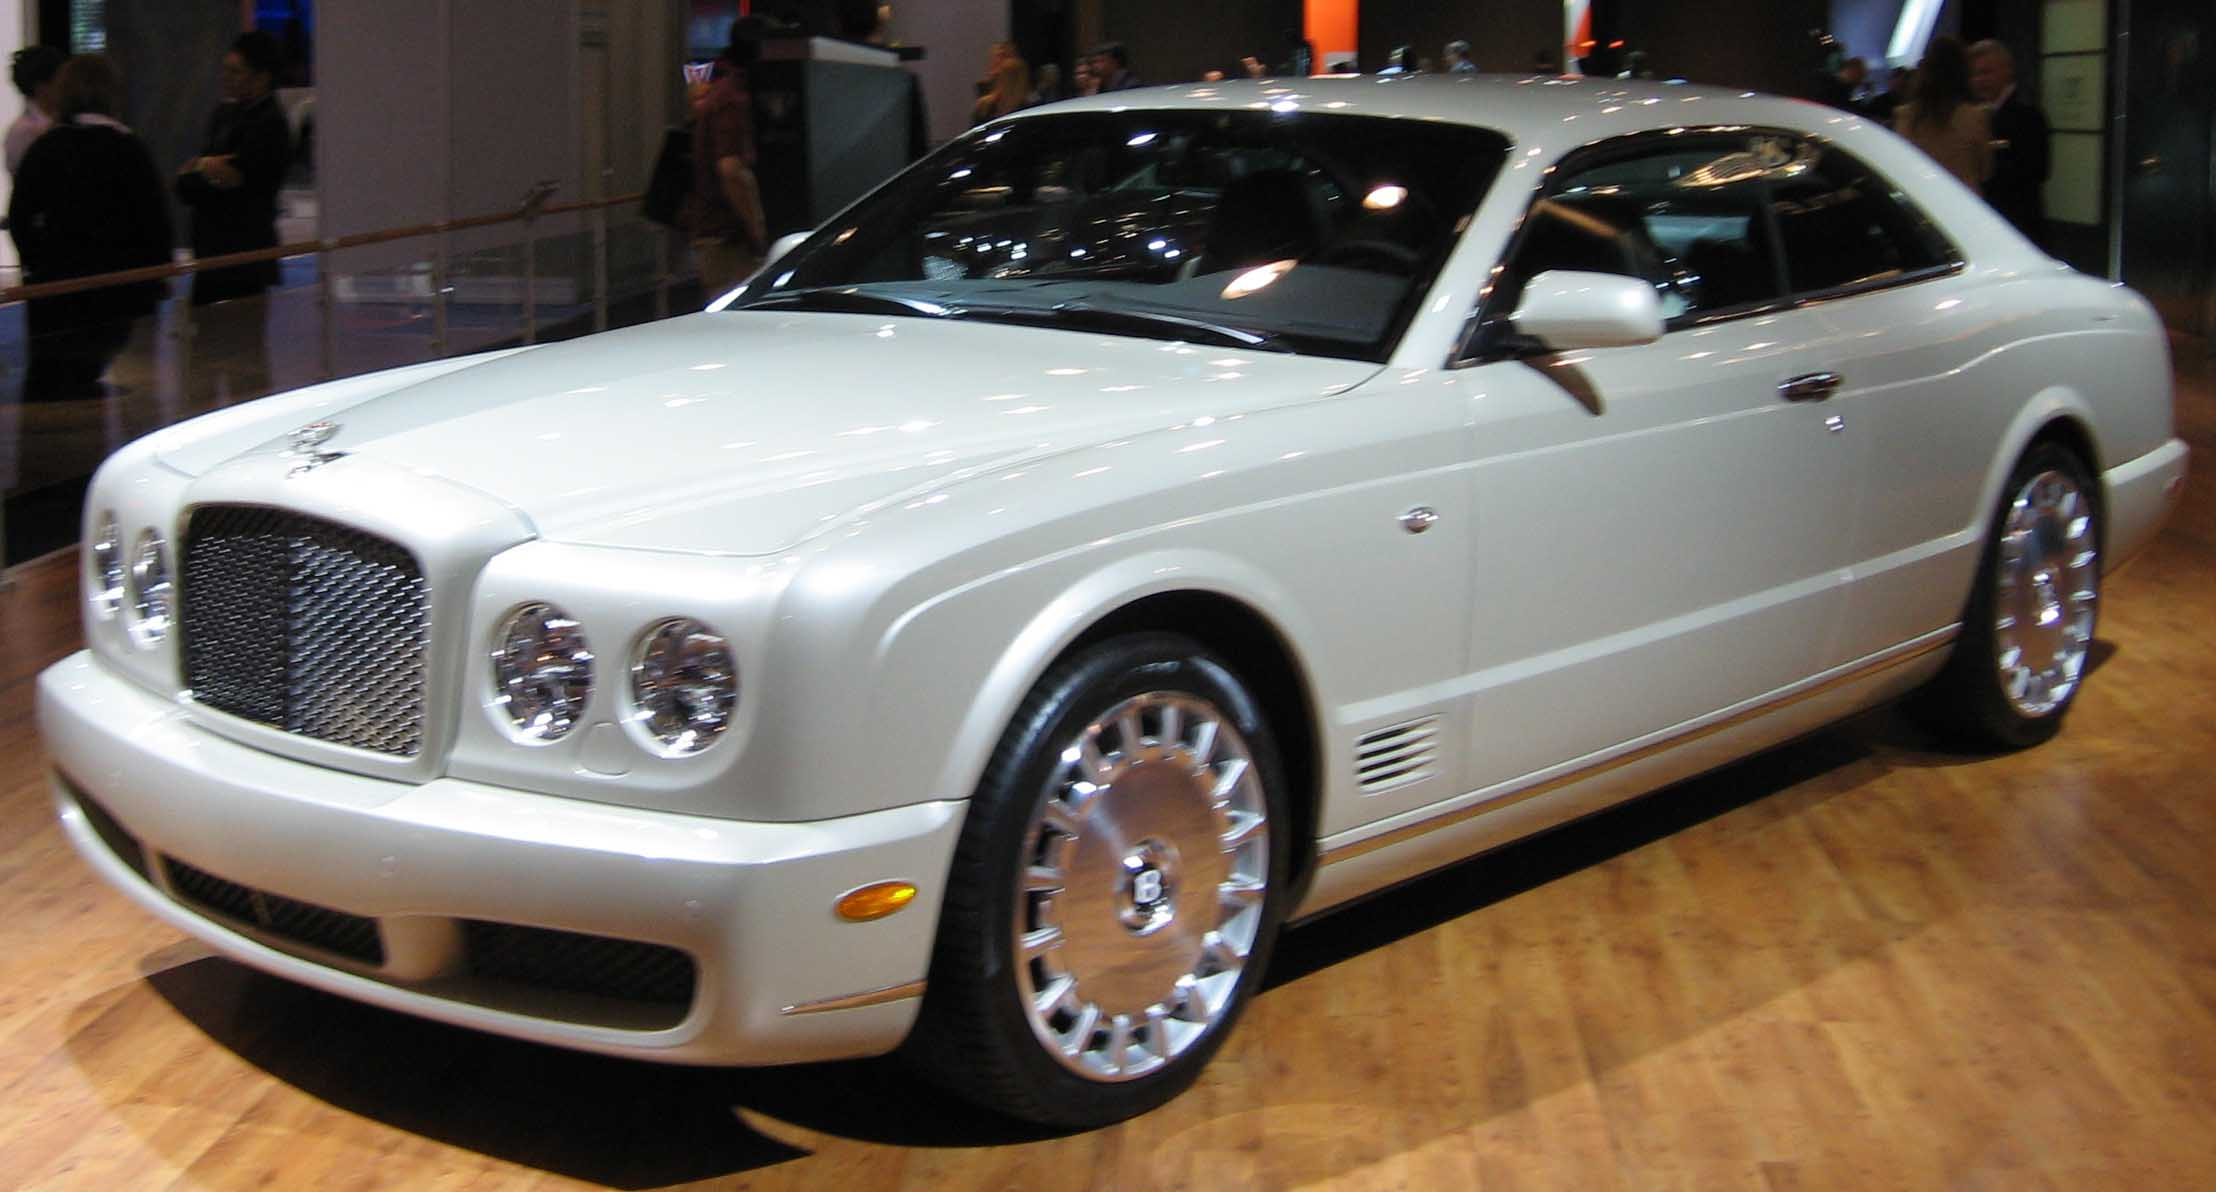 Bentley coupe photo - 1